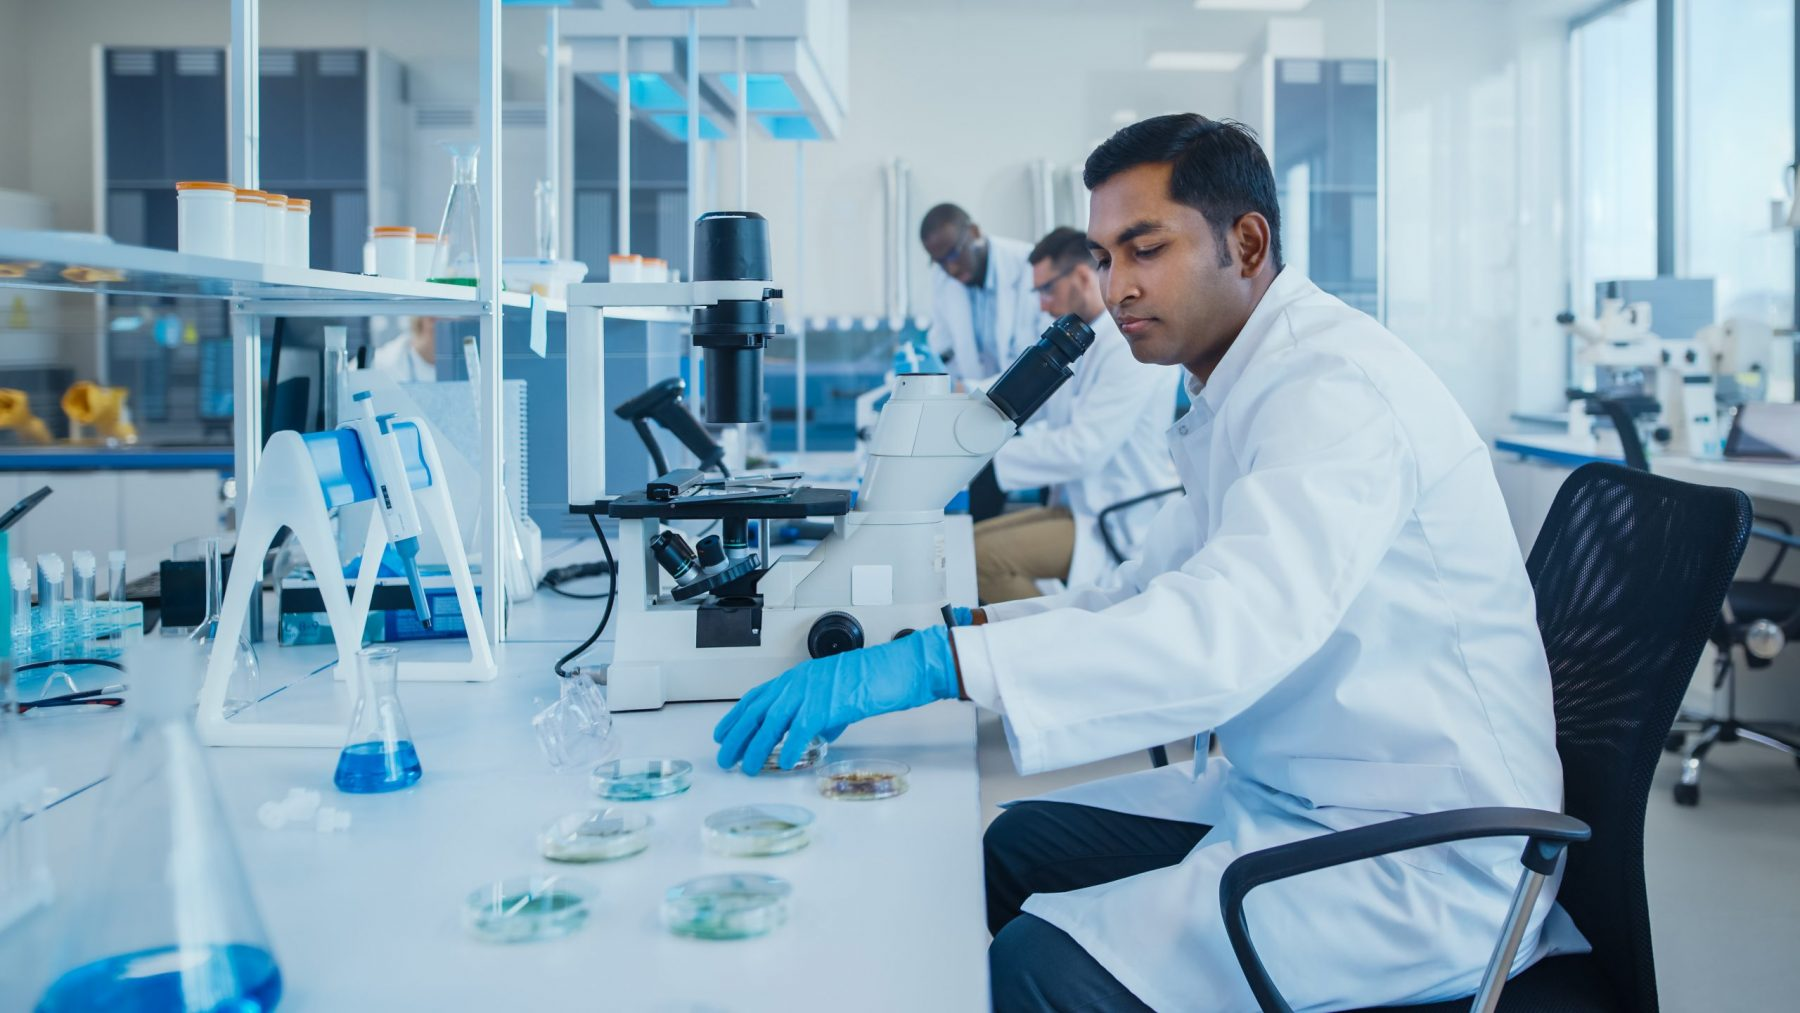 Man in lab coat in front of microscope with petri dishes on surface of the table